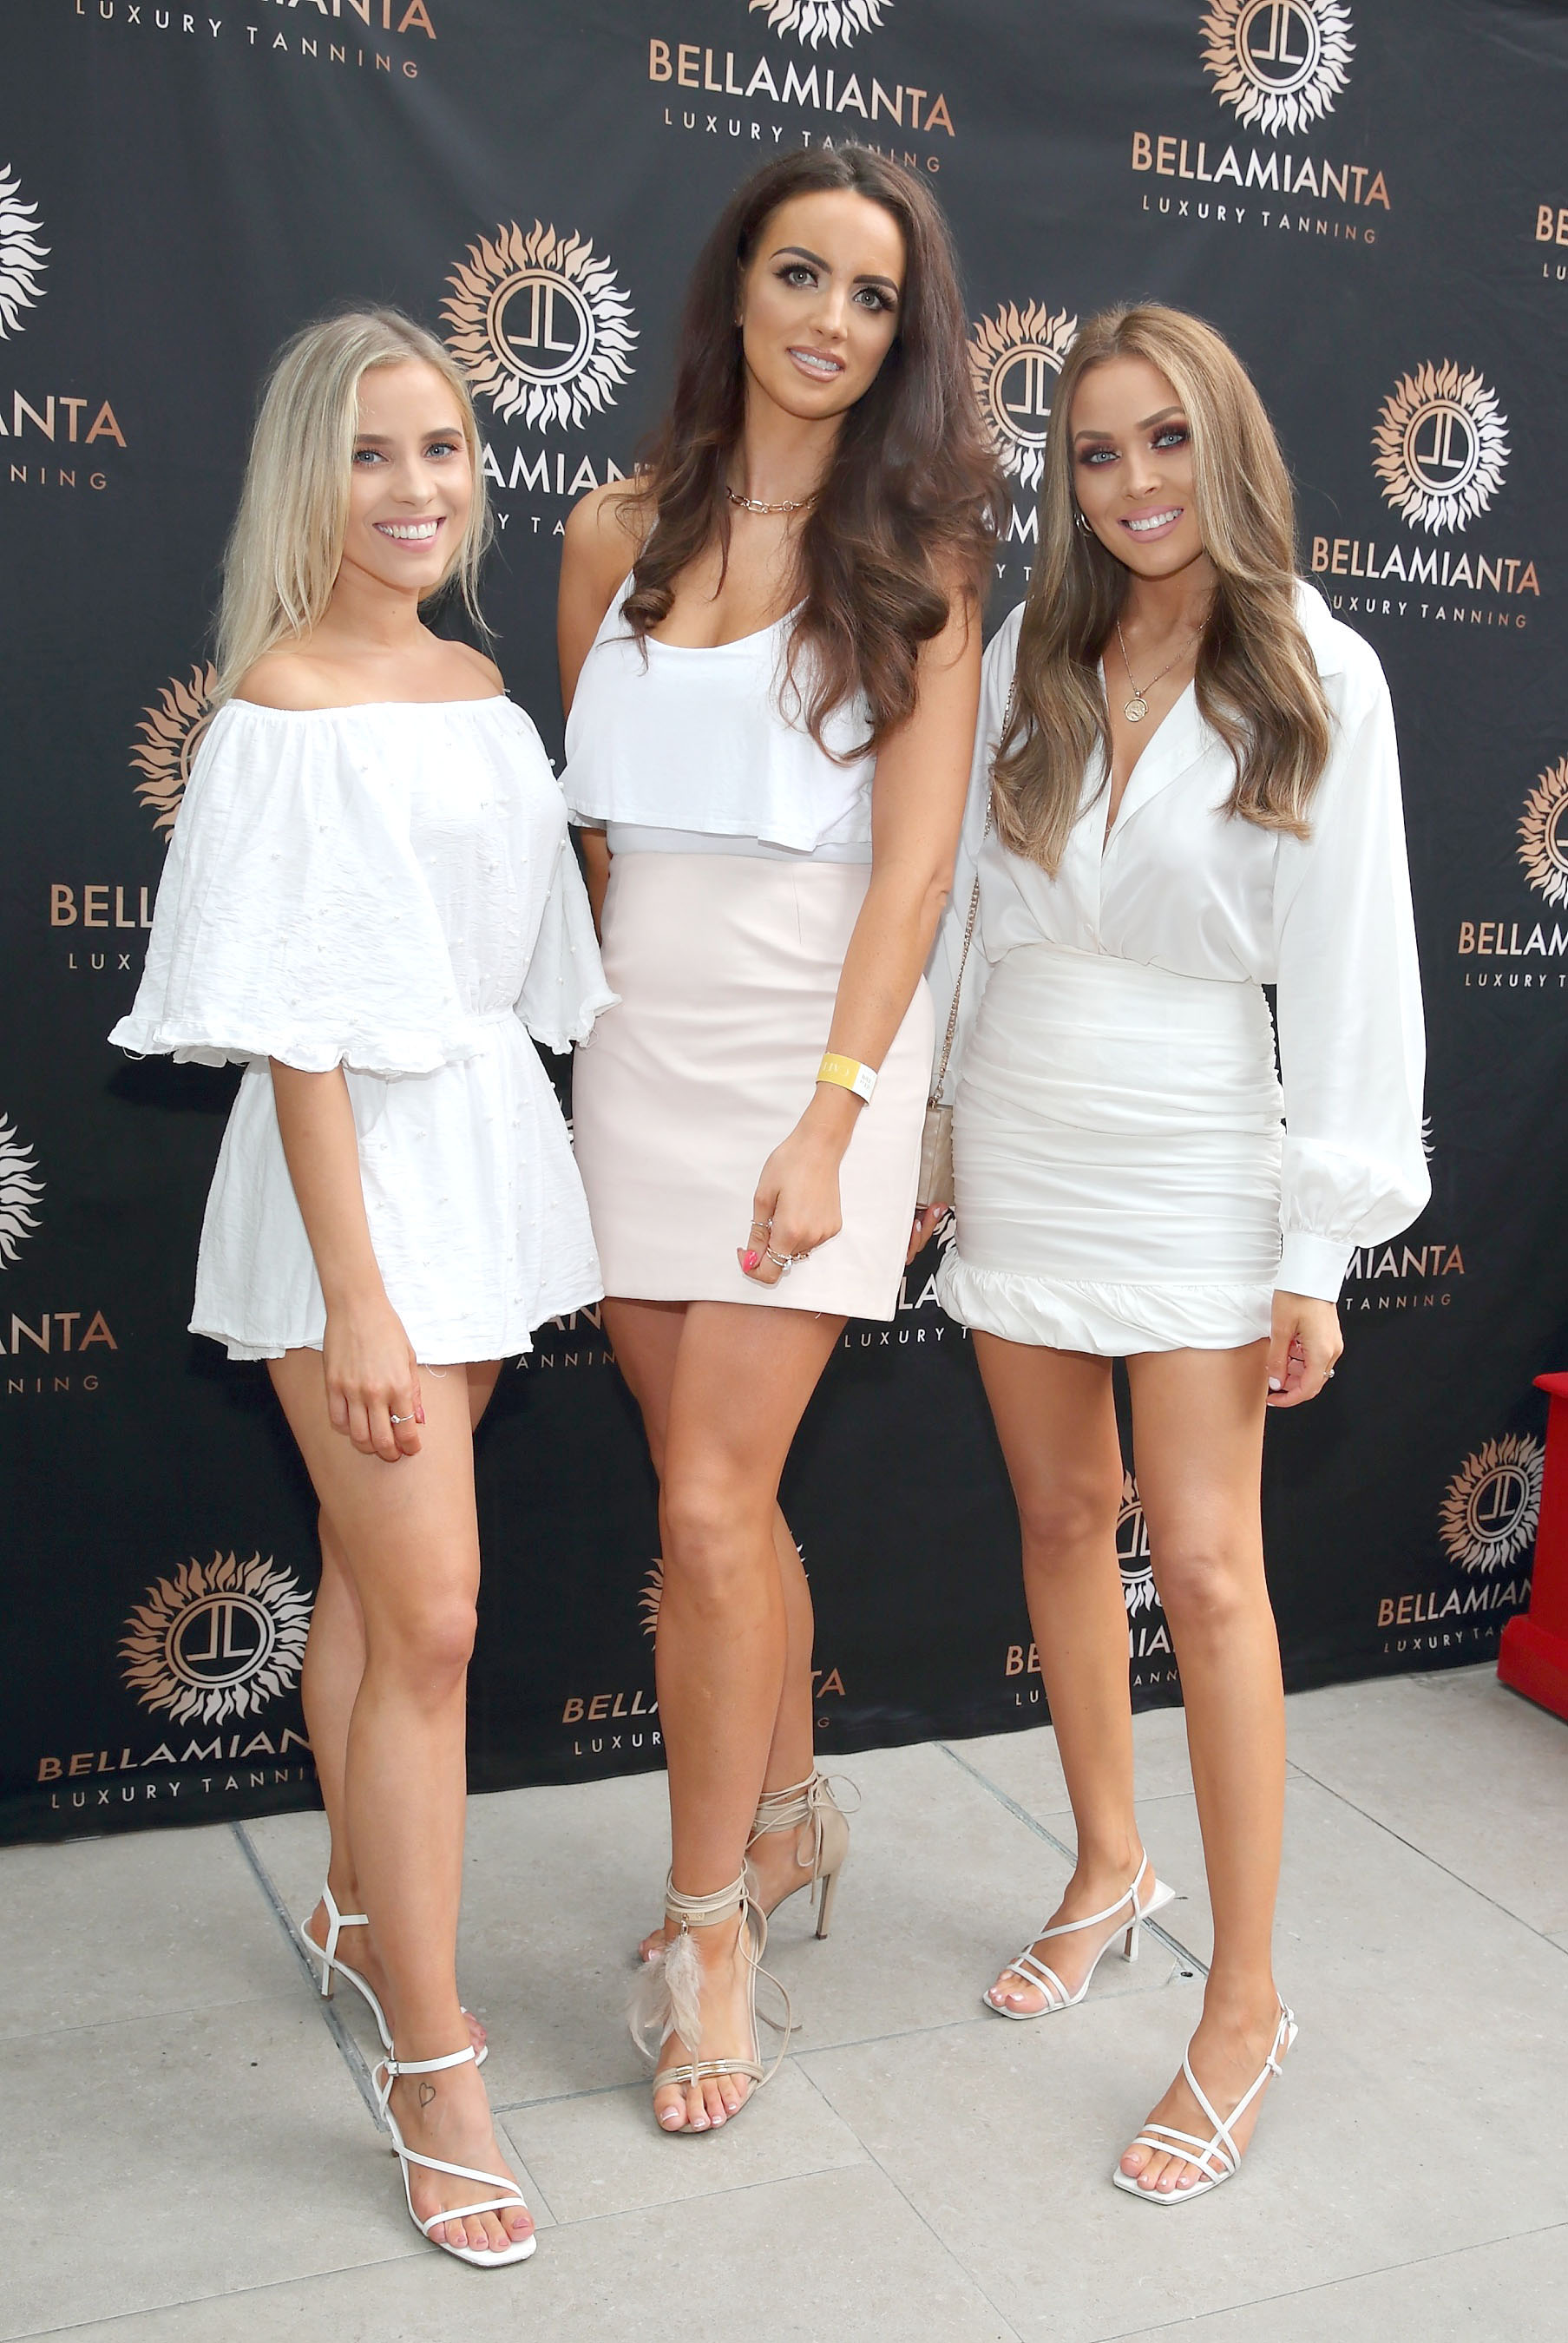 Maja Moranska, Sammy Stacey and Niamh Gough  pictured at the  Bellamianta Luxury Tan  Launch Party at Cafe En Seine,Dublin